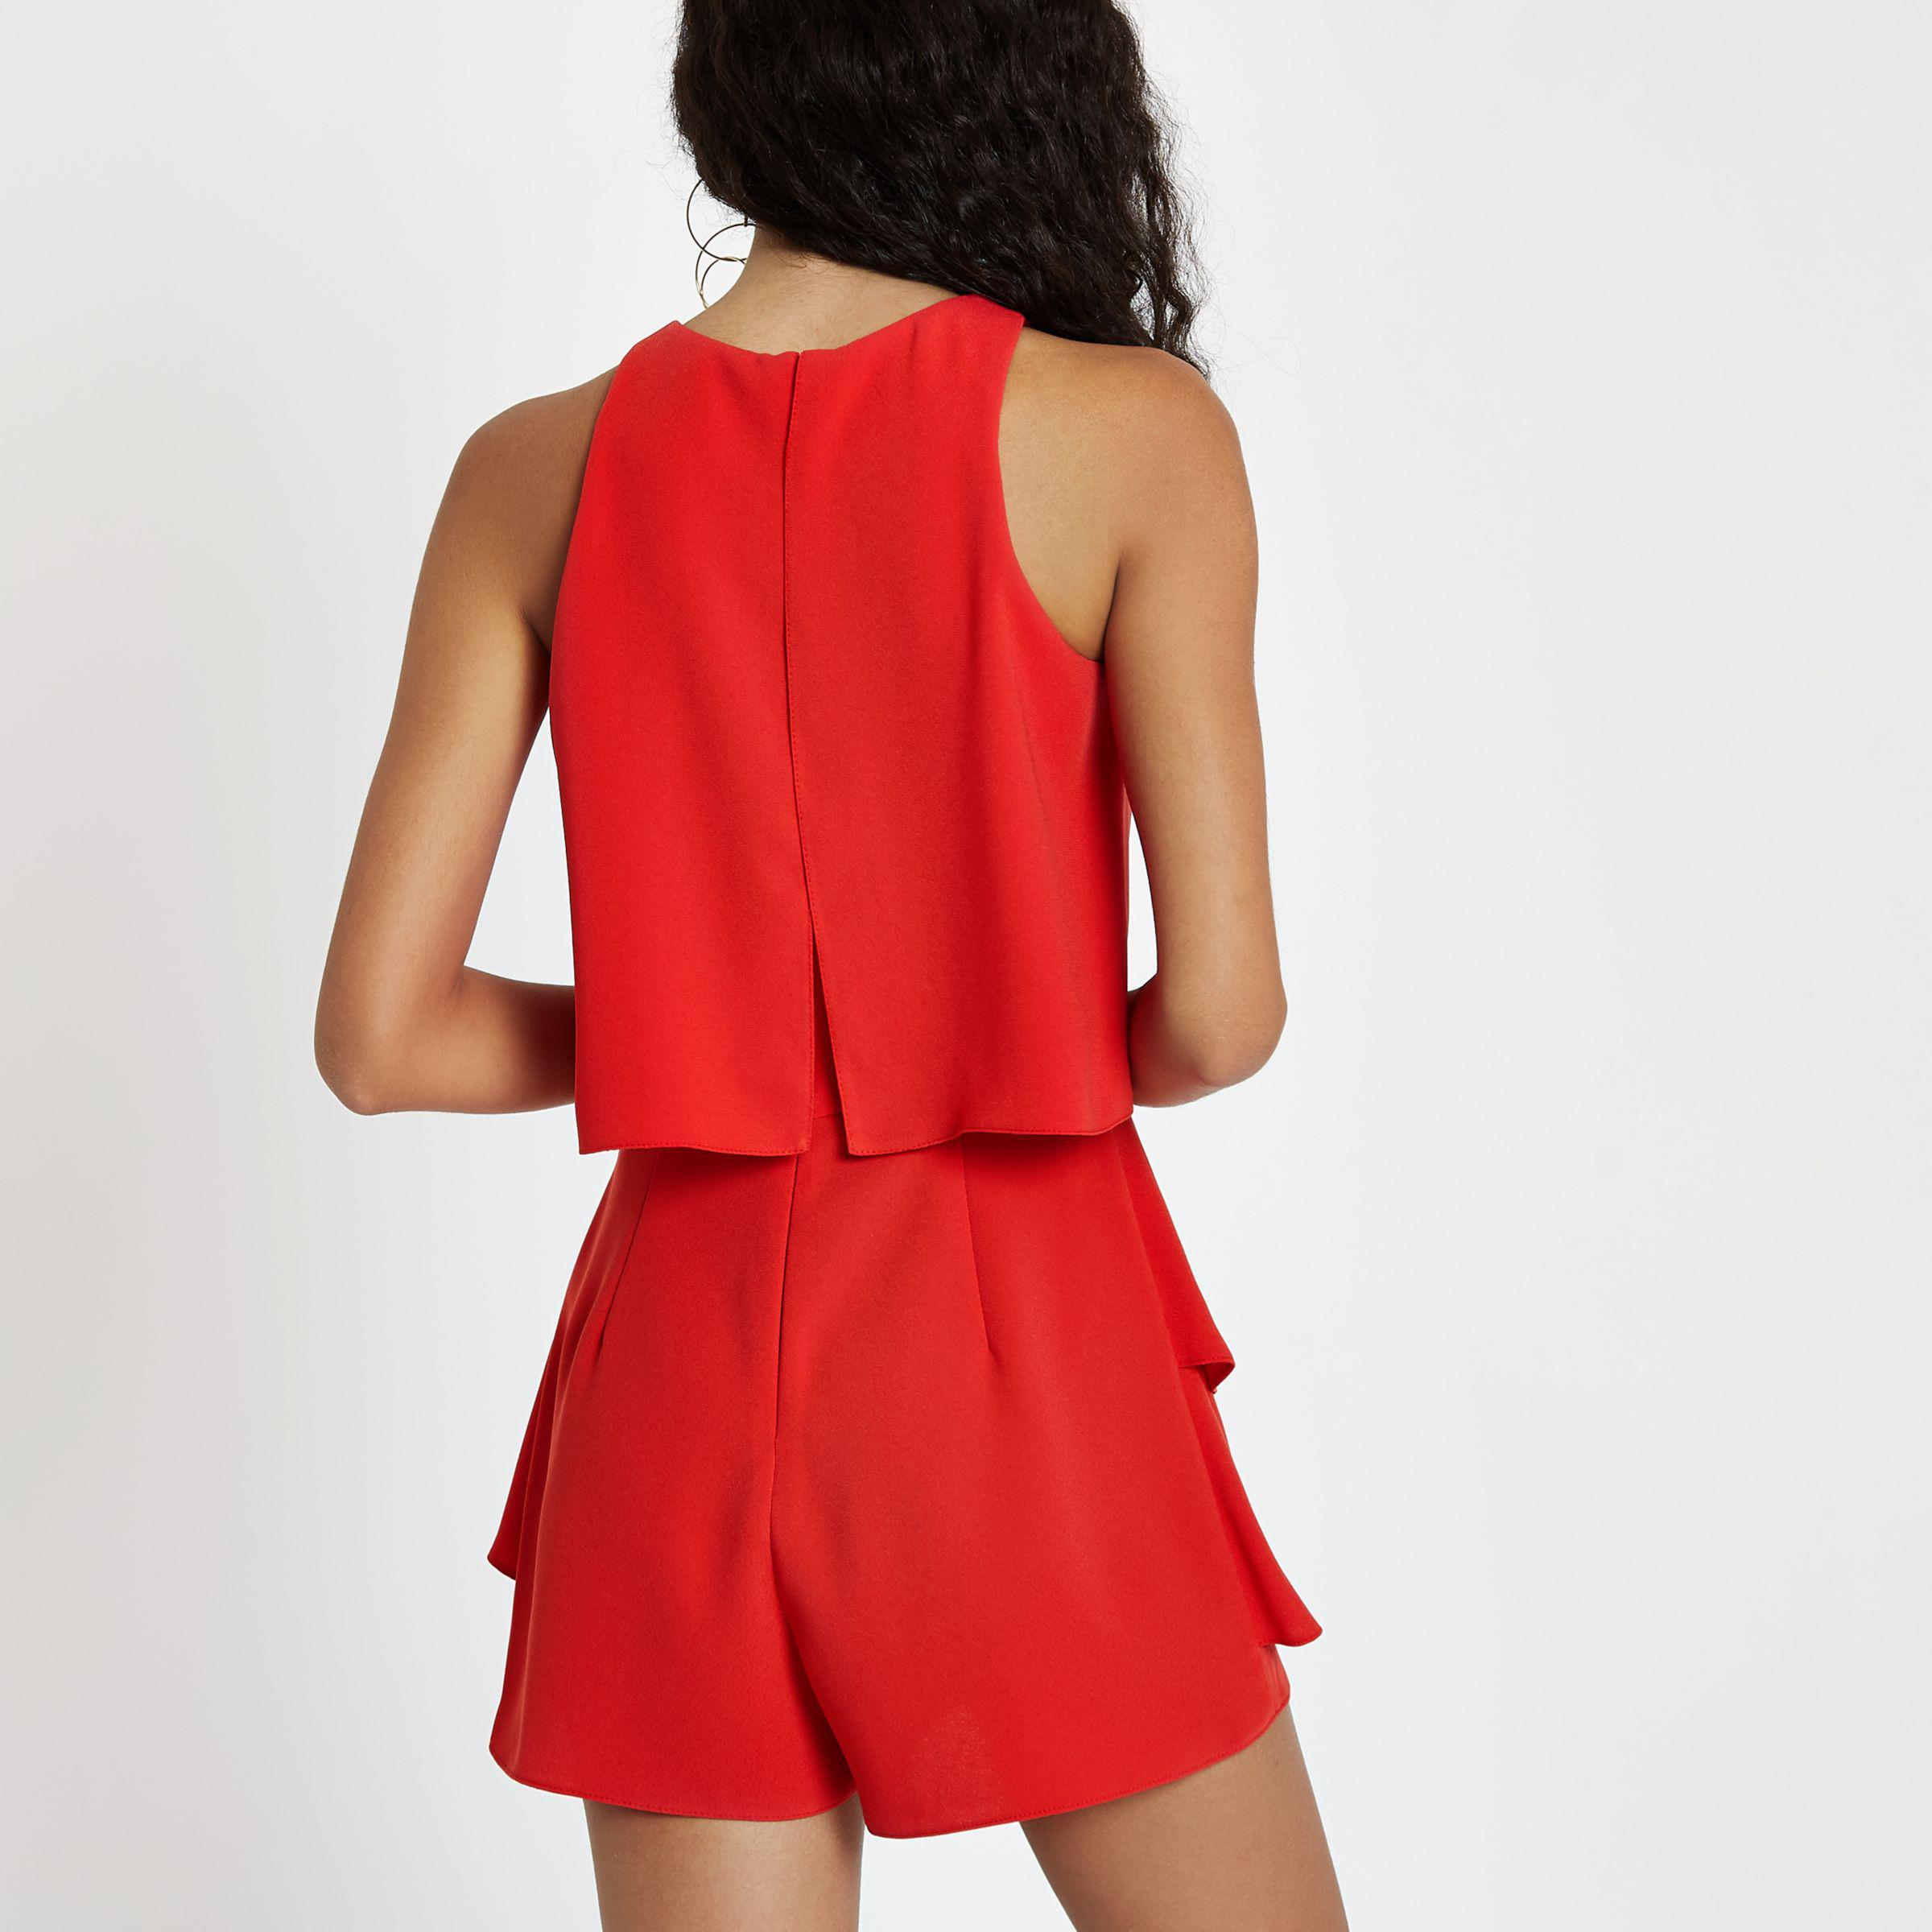 b072be5a6c6 River Island Red Tiered Frill Playsuit in Red - Lyst